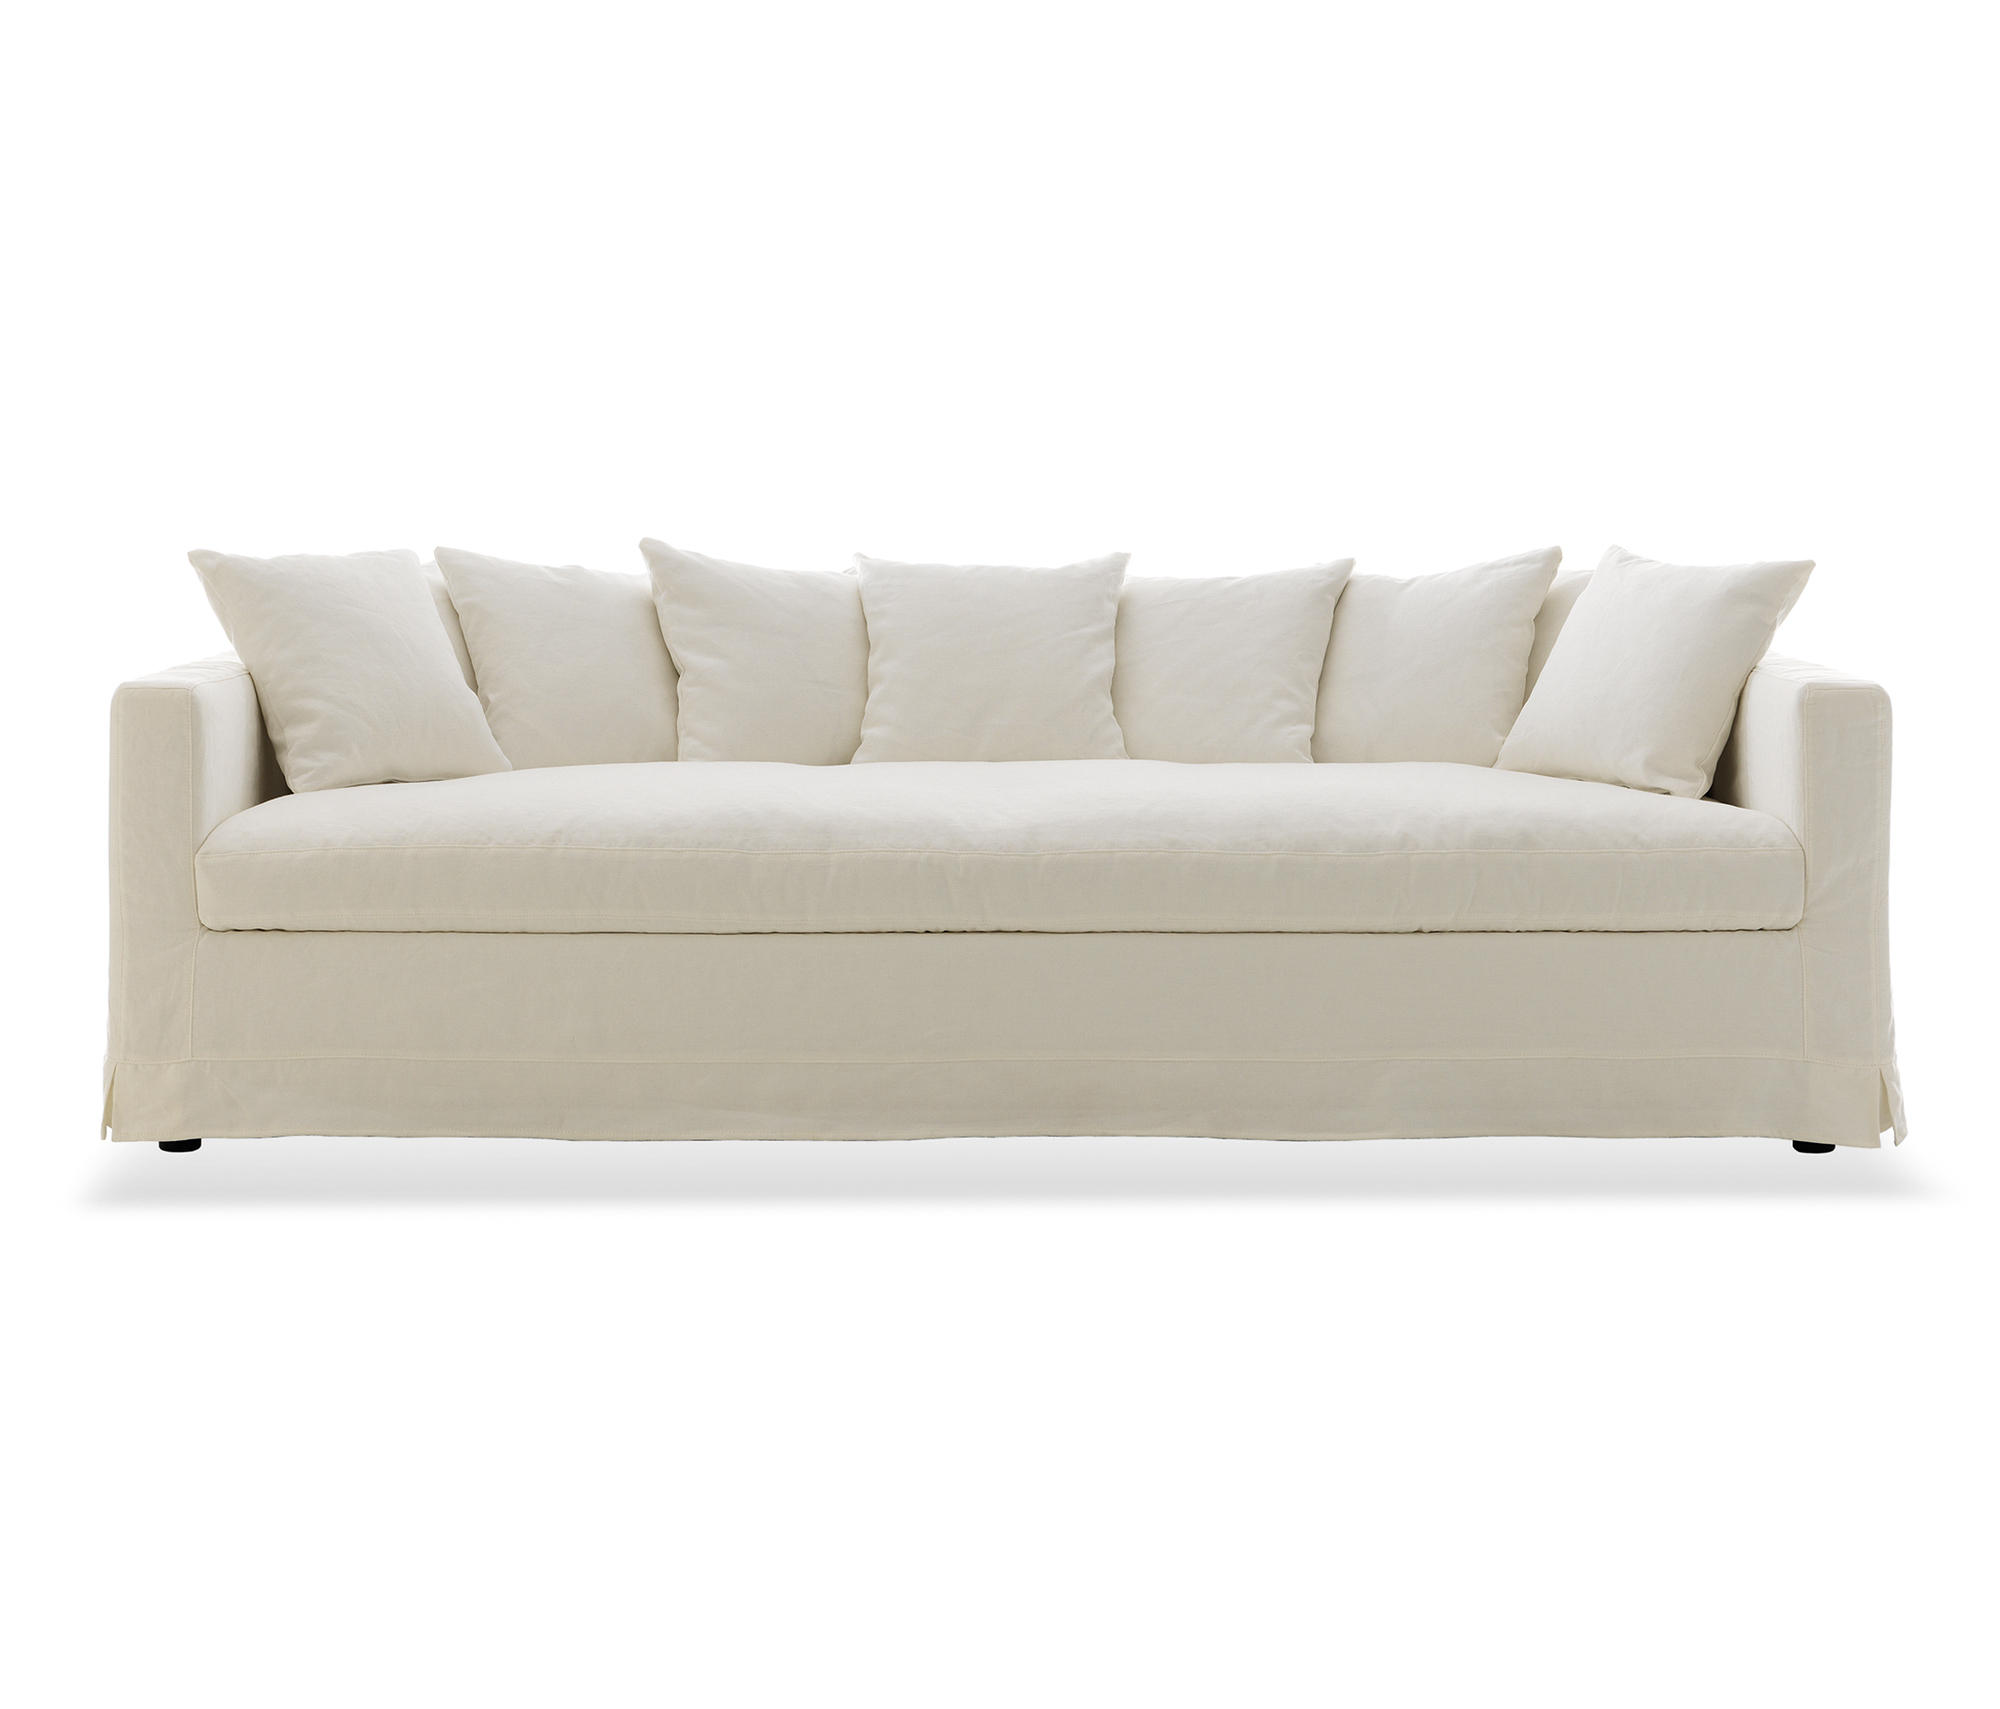 OTTO - Sofas von Pianca | Architonic